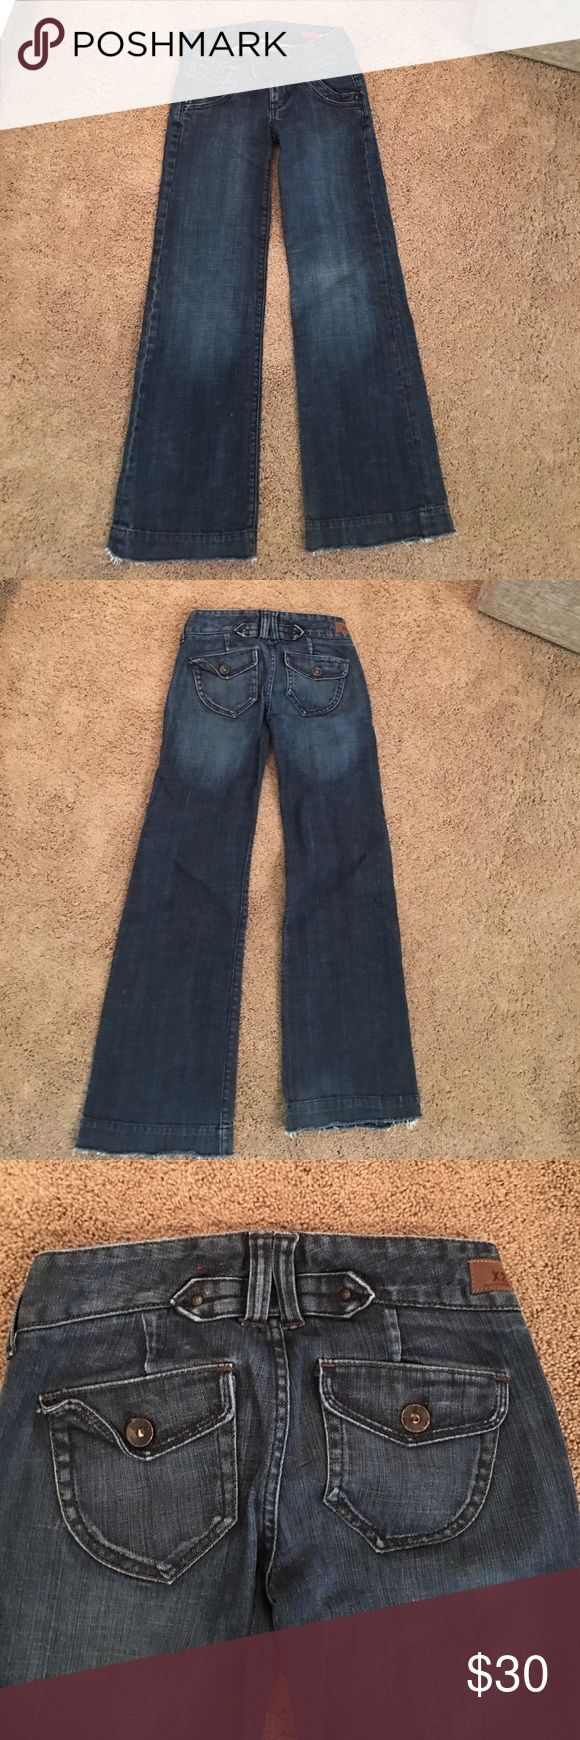 Express X2 Quality Denim women's jeans 0R So cute!!!!! Worn once! Perfect condition Express Jeans